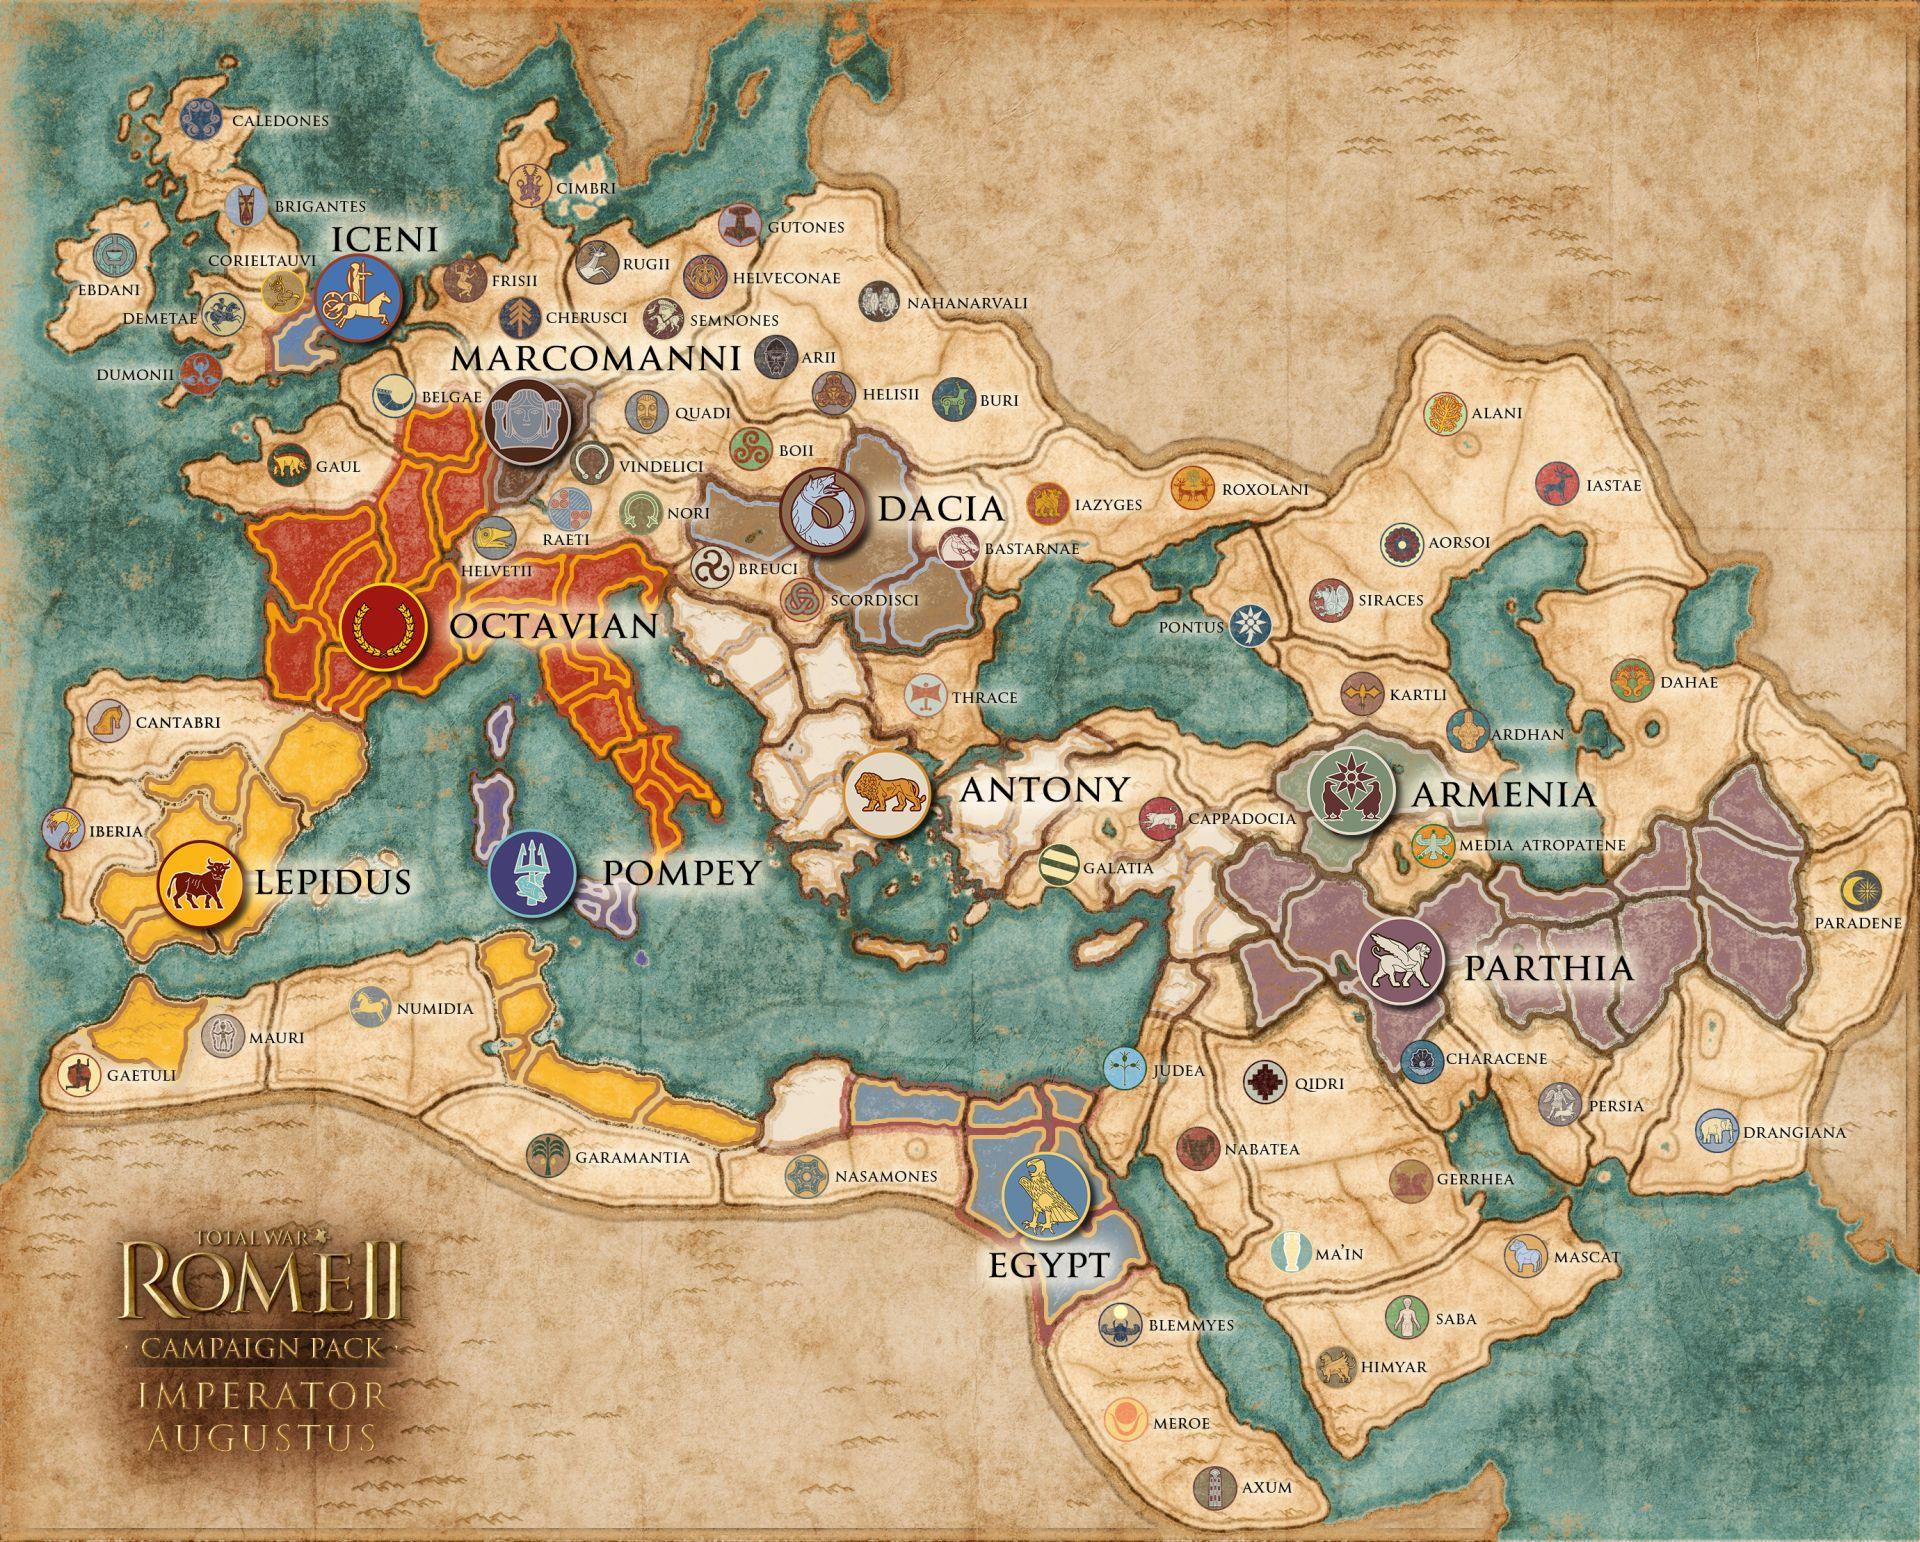 Watch Three Hours Of Total War Rome Ii Imperator Augustus Campaign Action